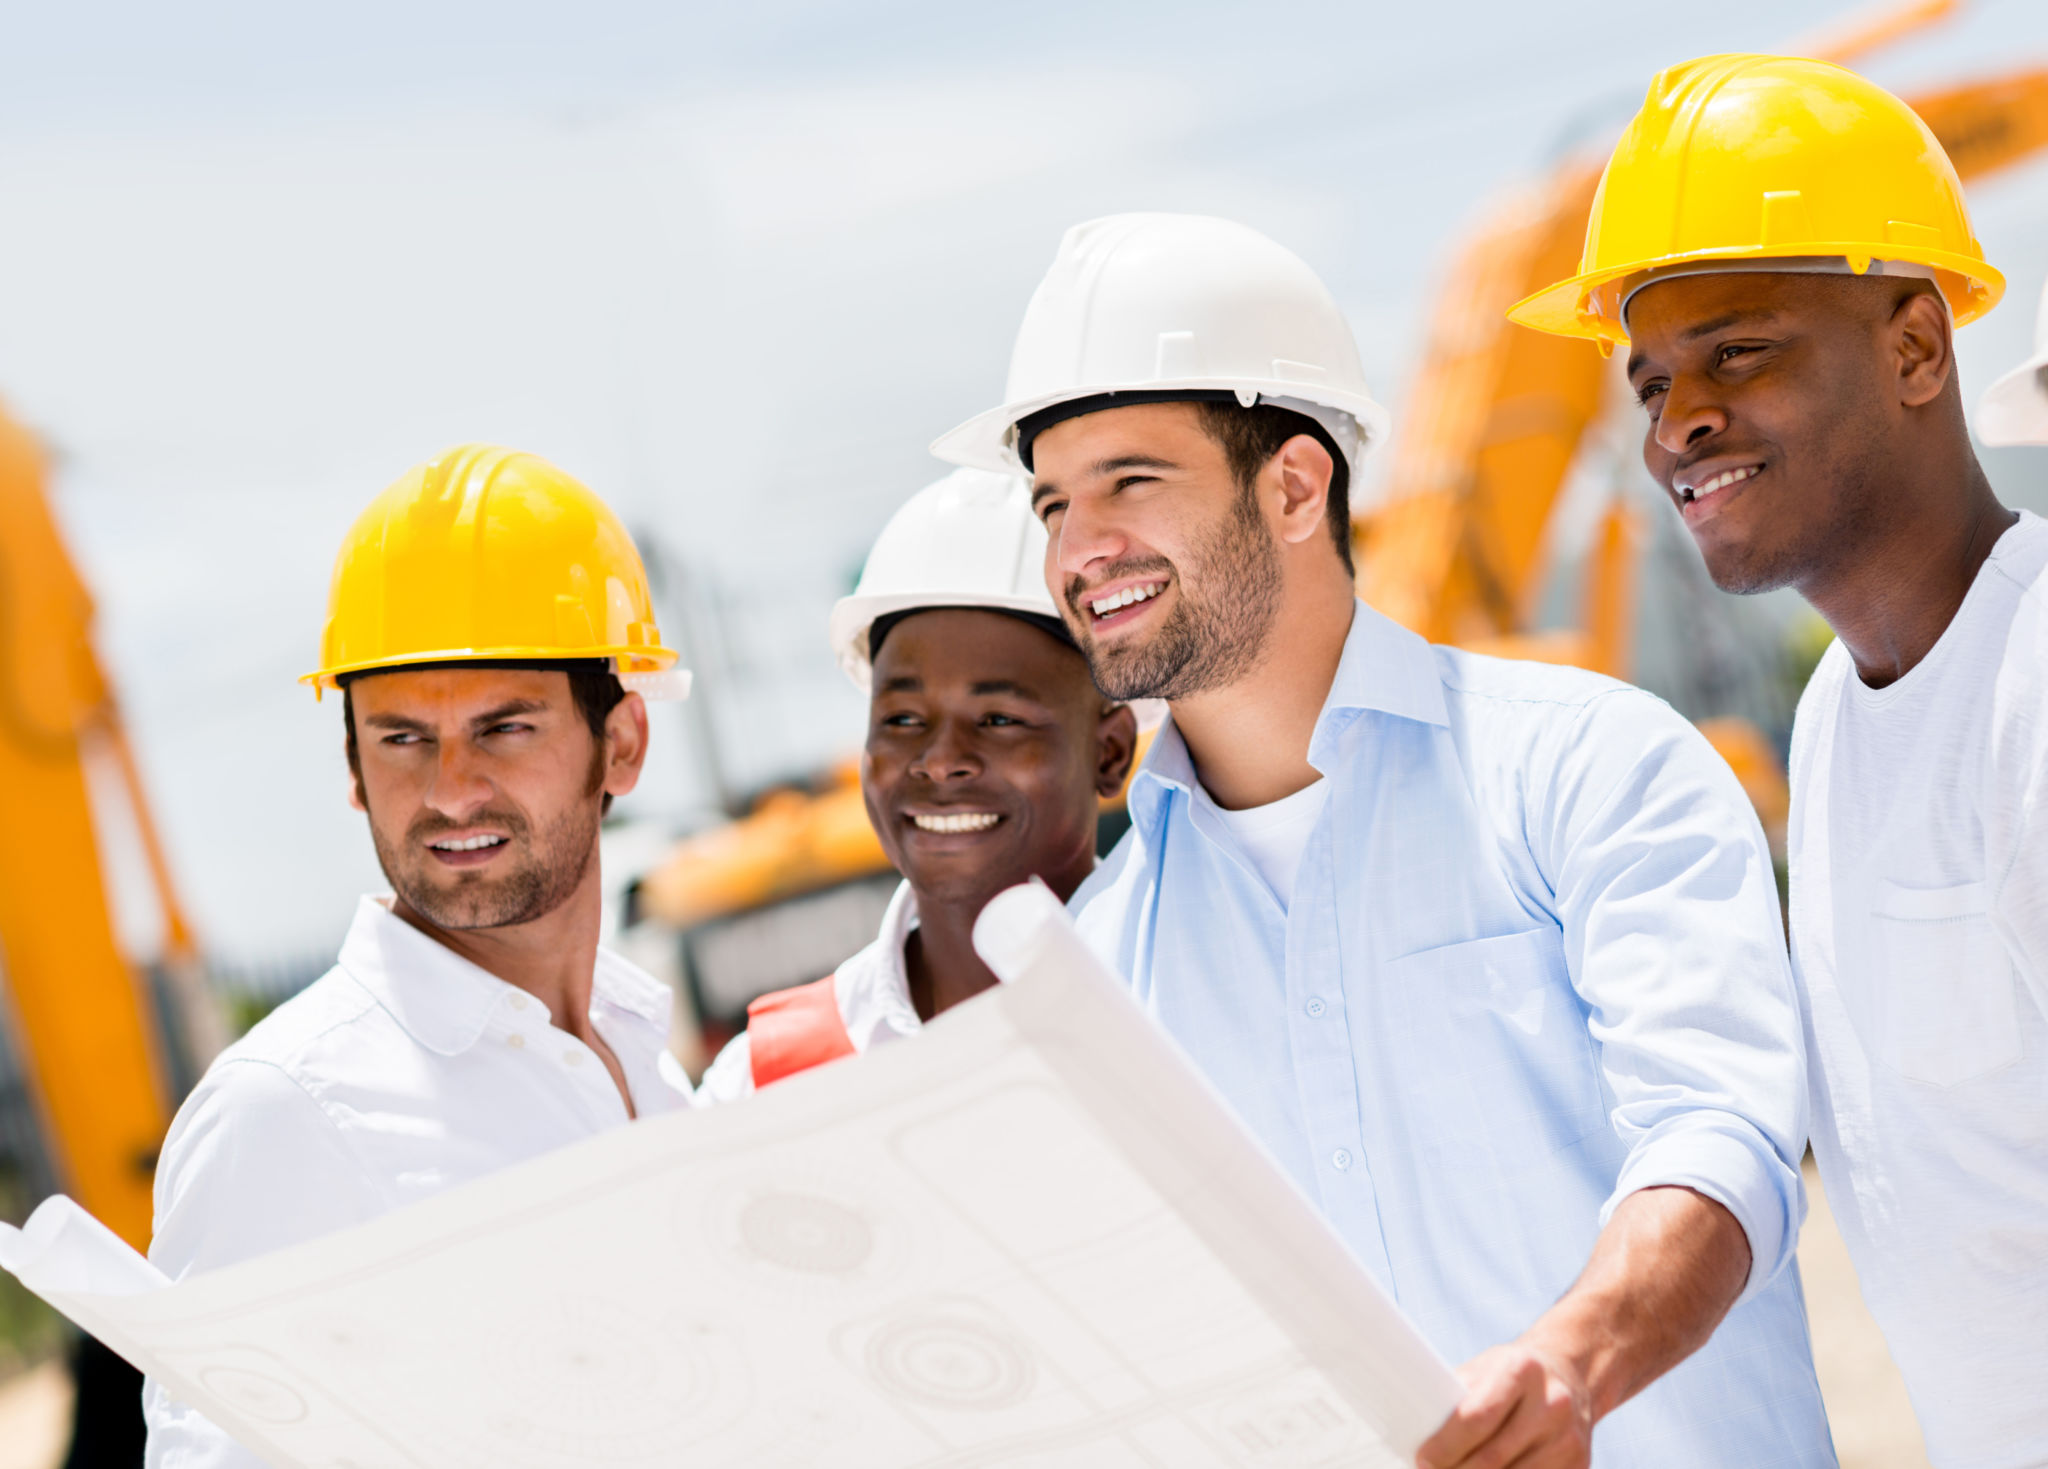 Financing planning construction business